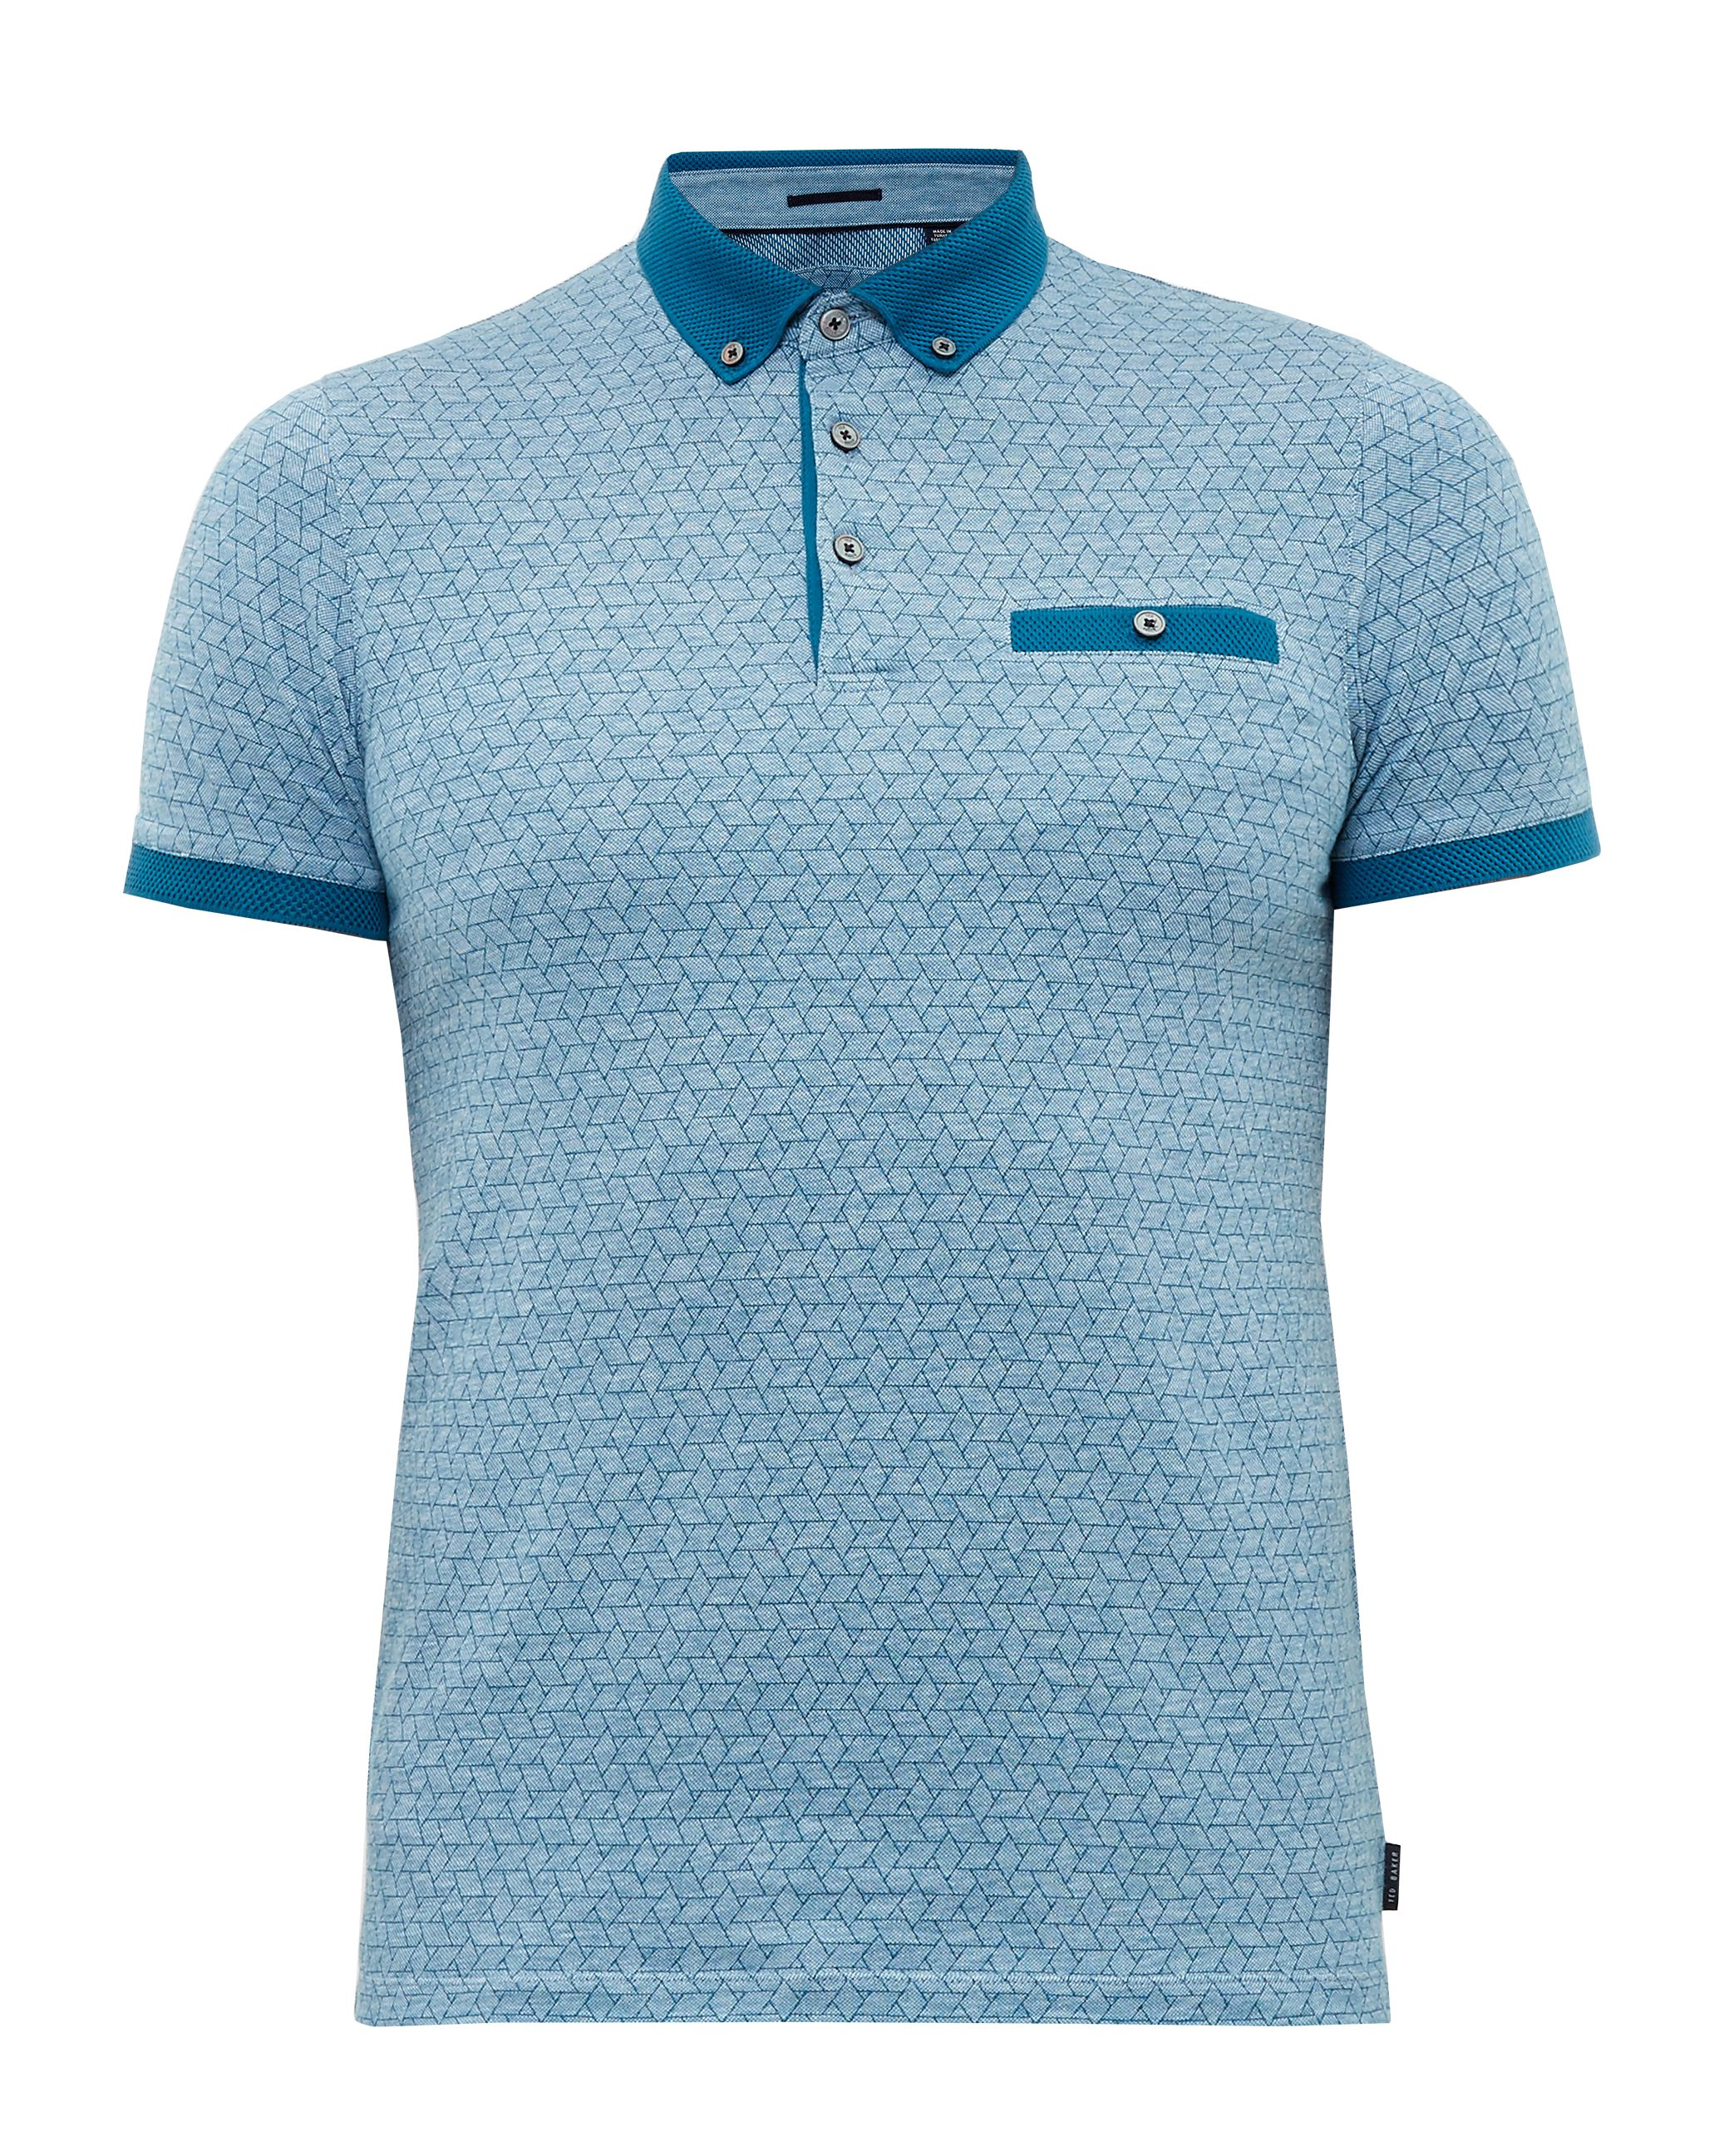 Mens Ted Baker Collin Geo Print Cotton Polo Shirt Turquoise